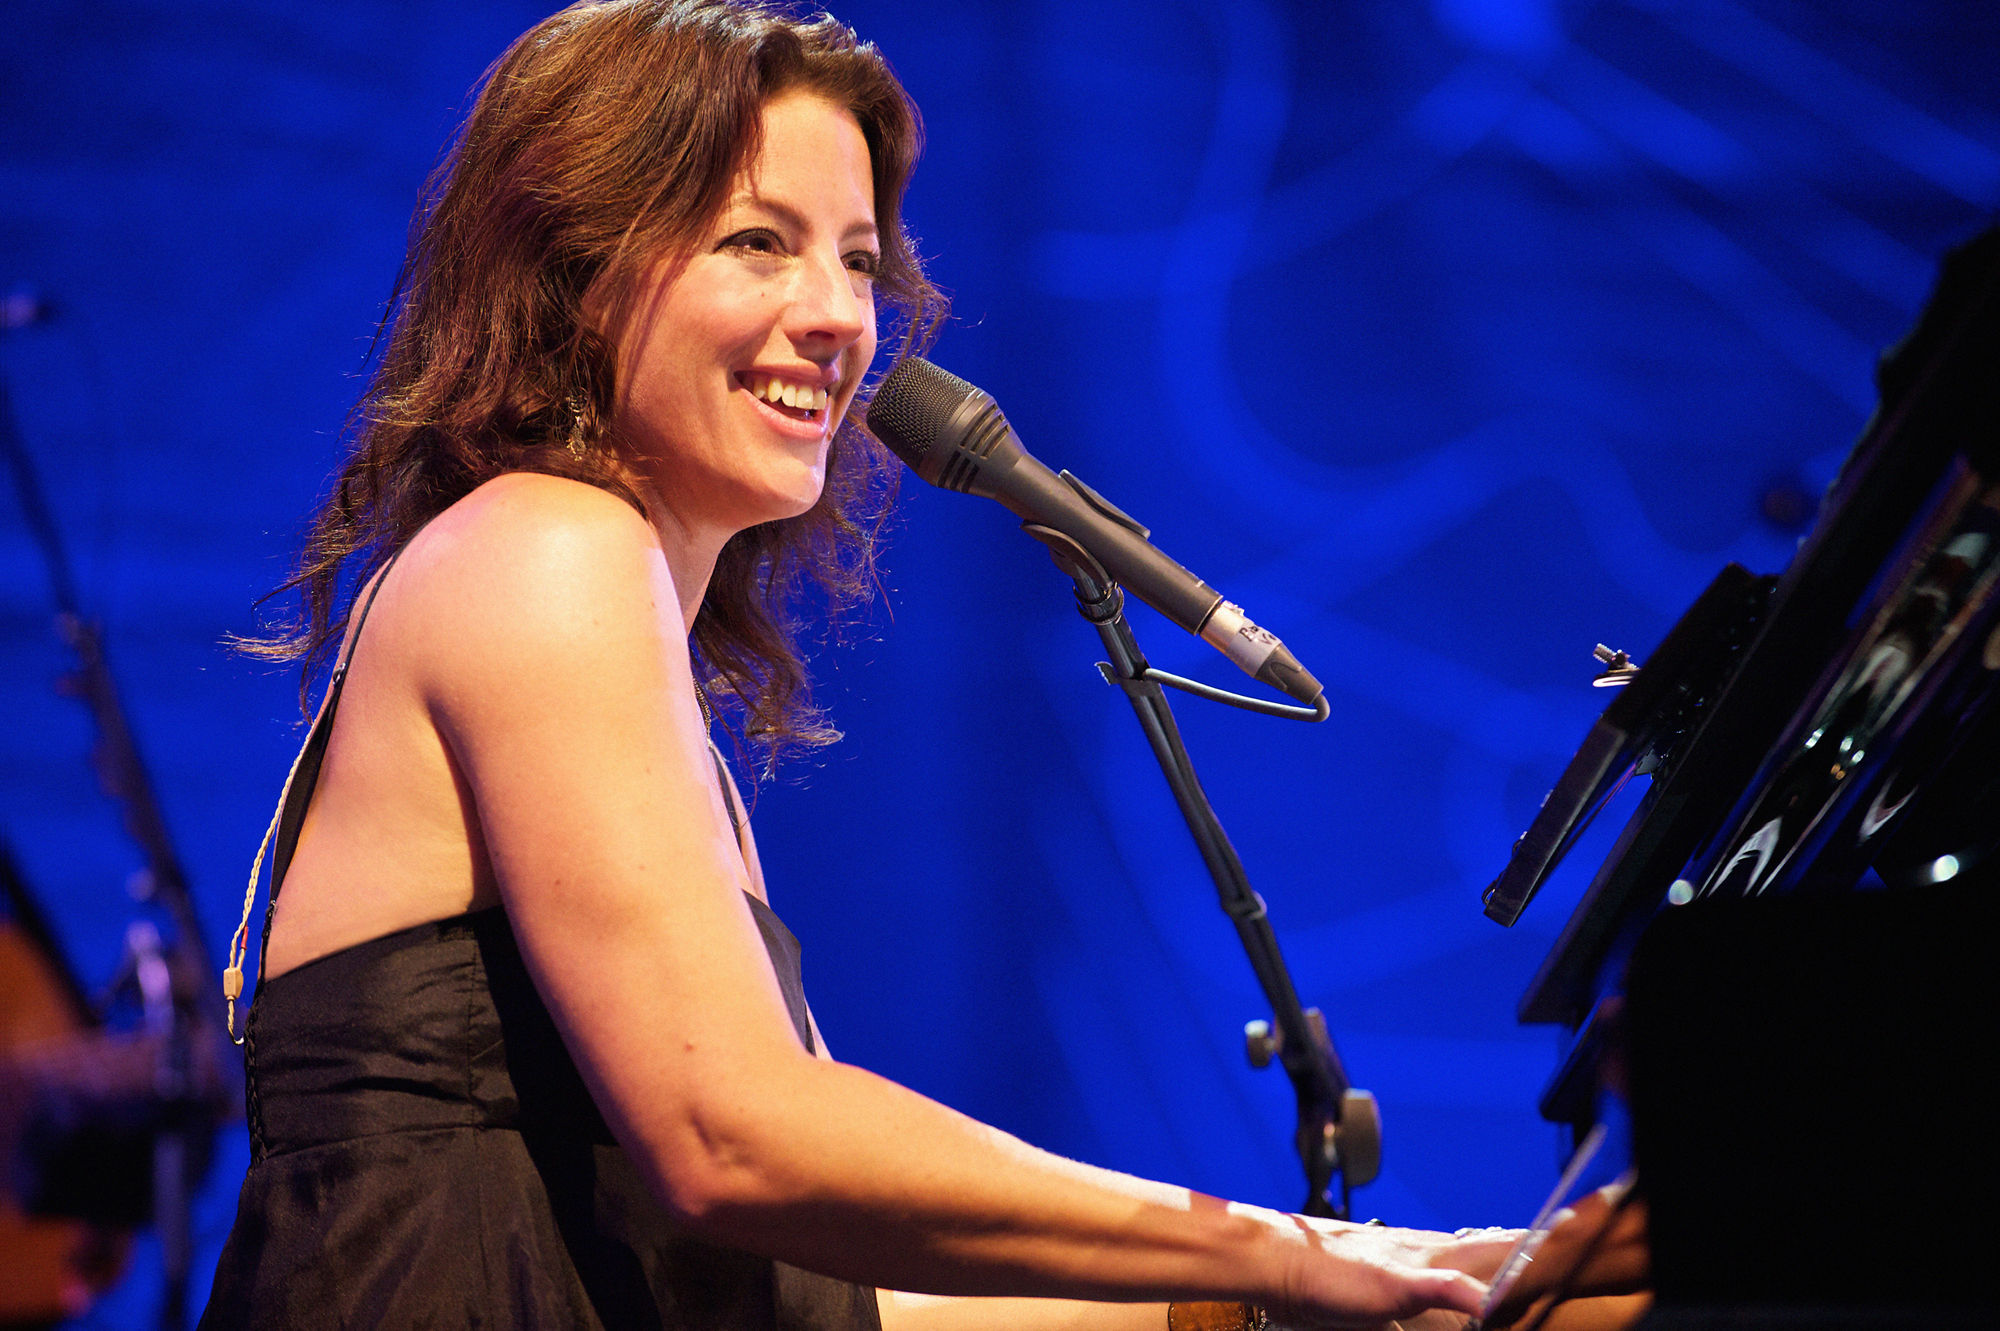 Sarah McLachlan at Sarofim Hall at The Hobby Center